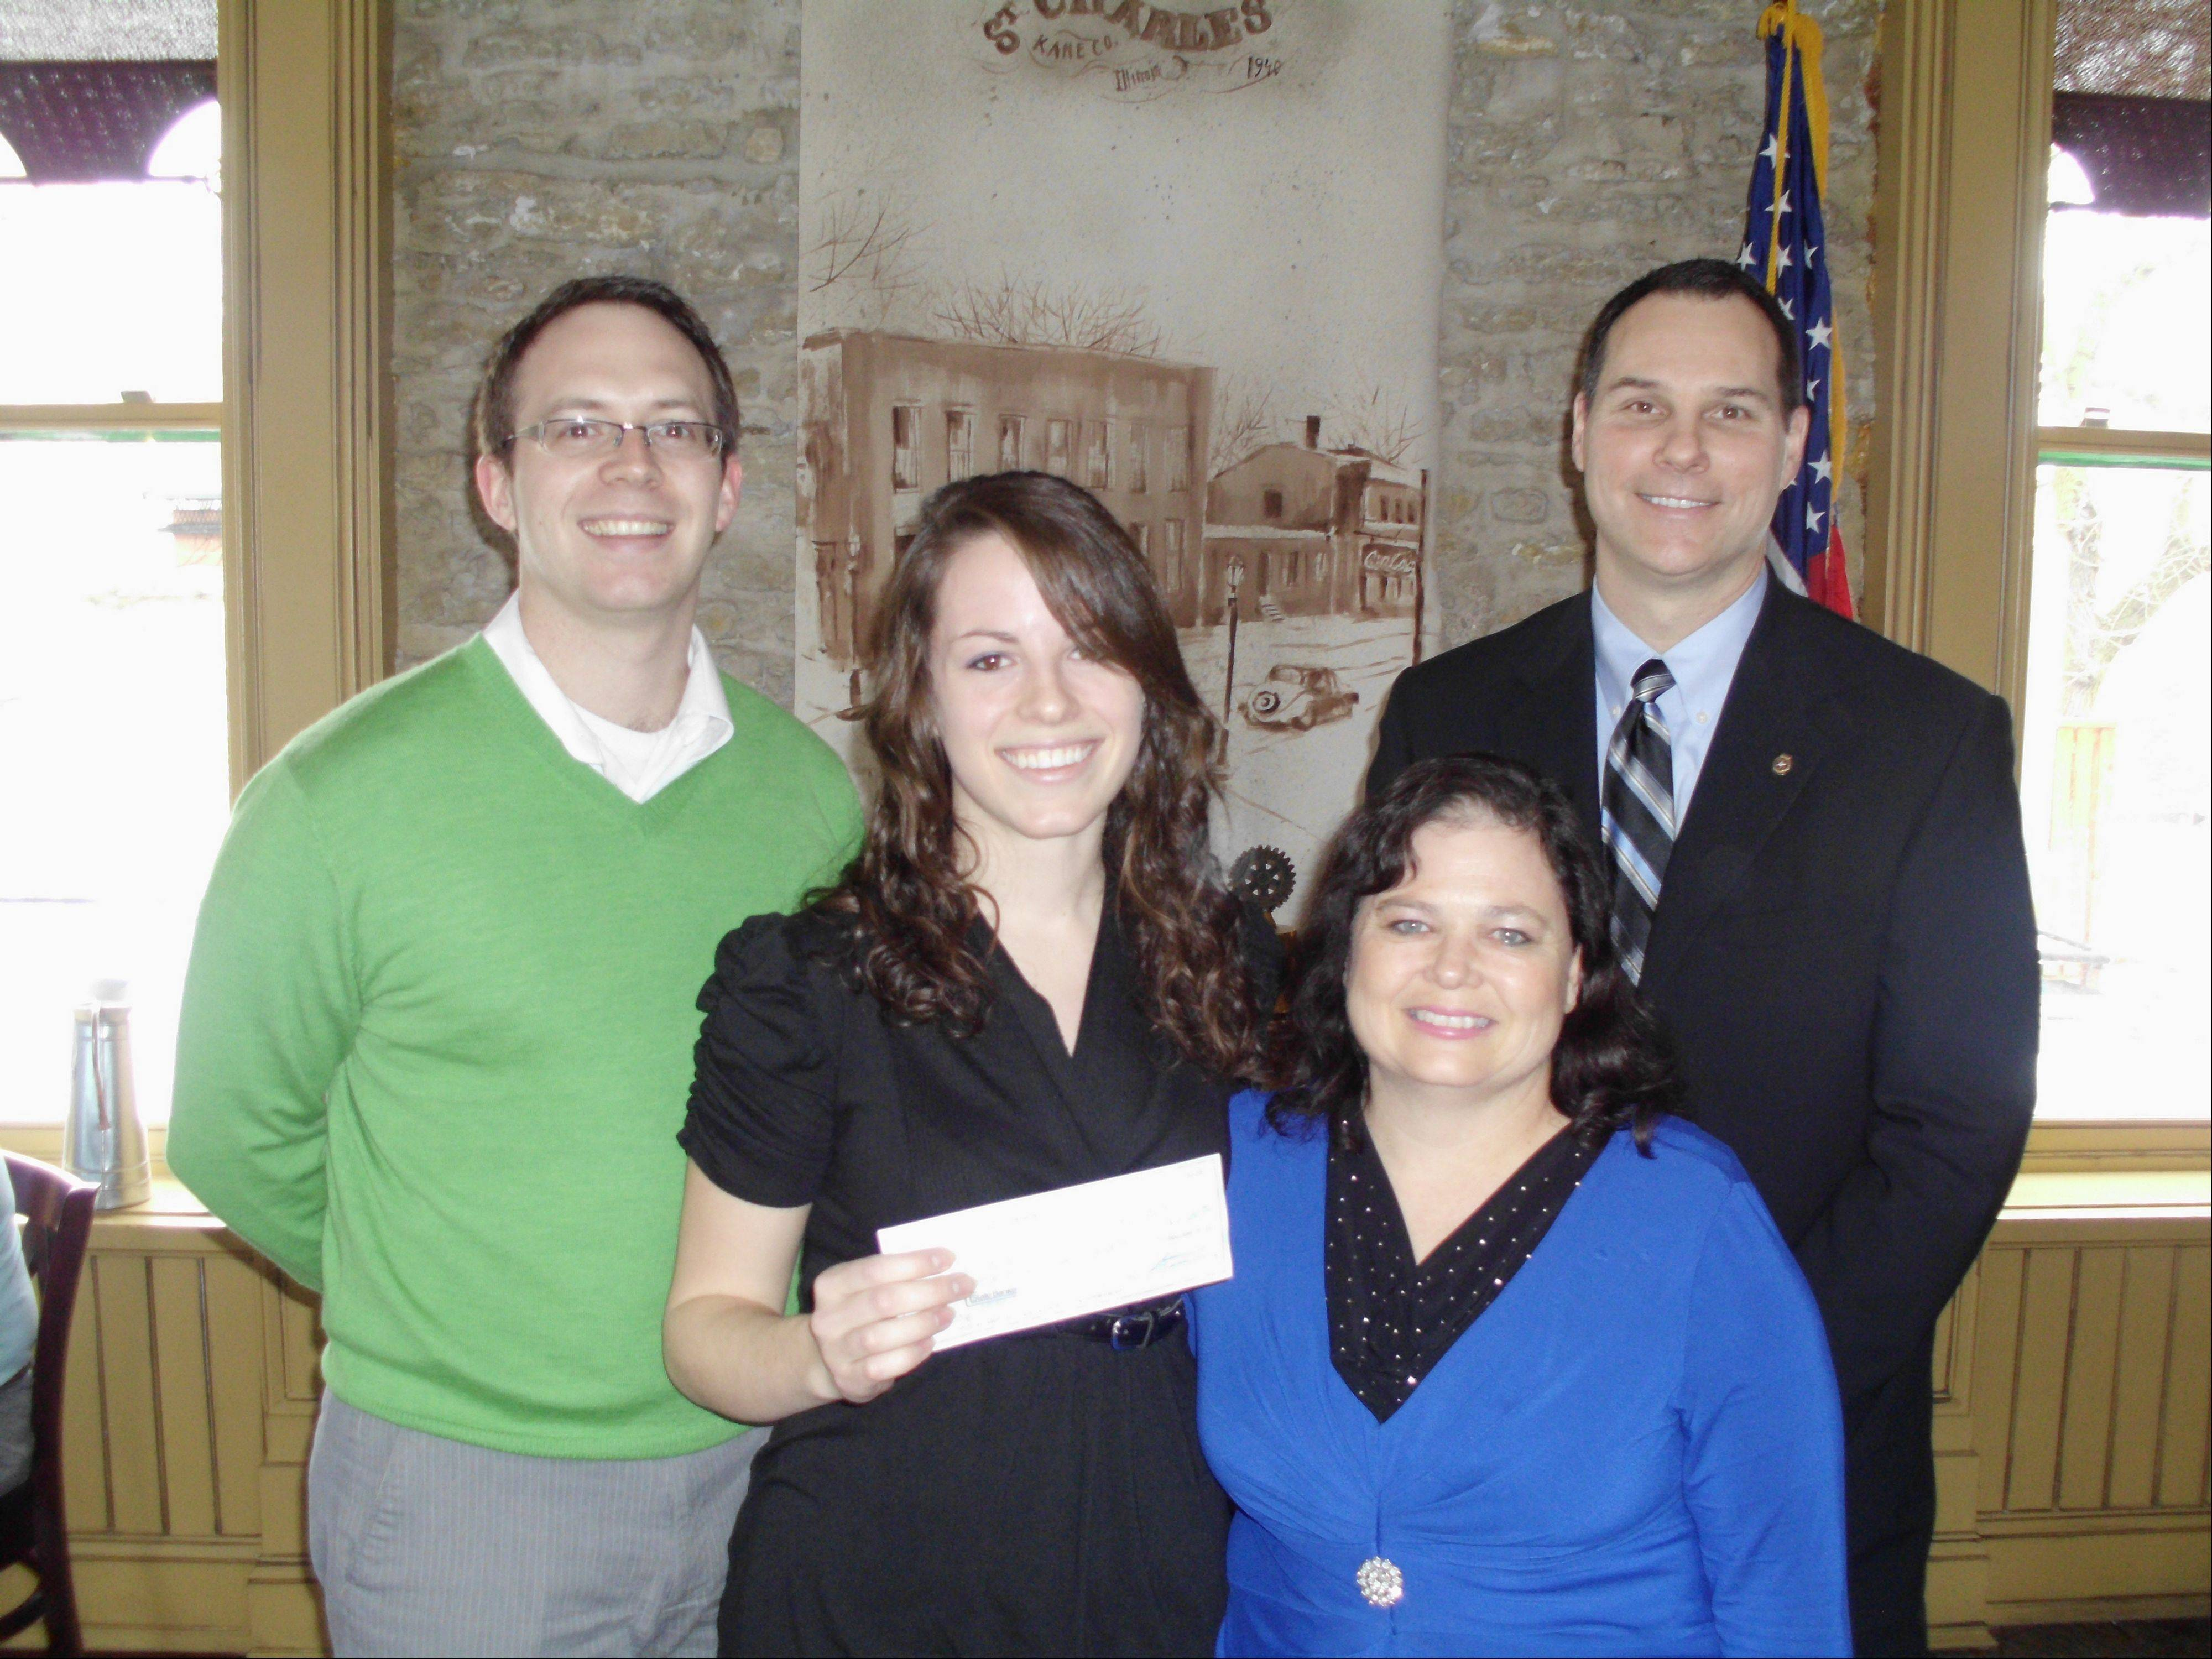 Scholarship winner Mary Kuhn, with her mother, Jennifer Kuhn, receive the $2,500 scholarship check from Scott Piner, left, St. Charles Noon Rotary Club president, and Mark Nyman, St. Charles Noon Rotary Foundation president.